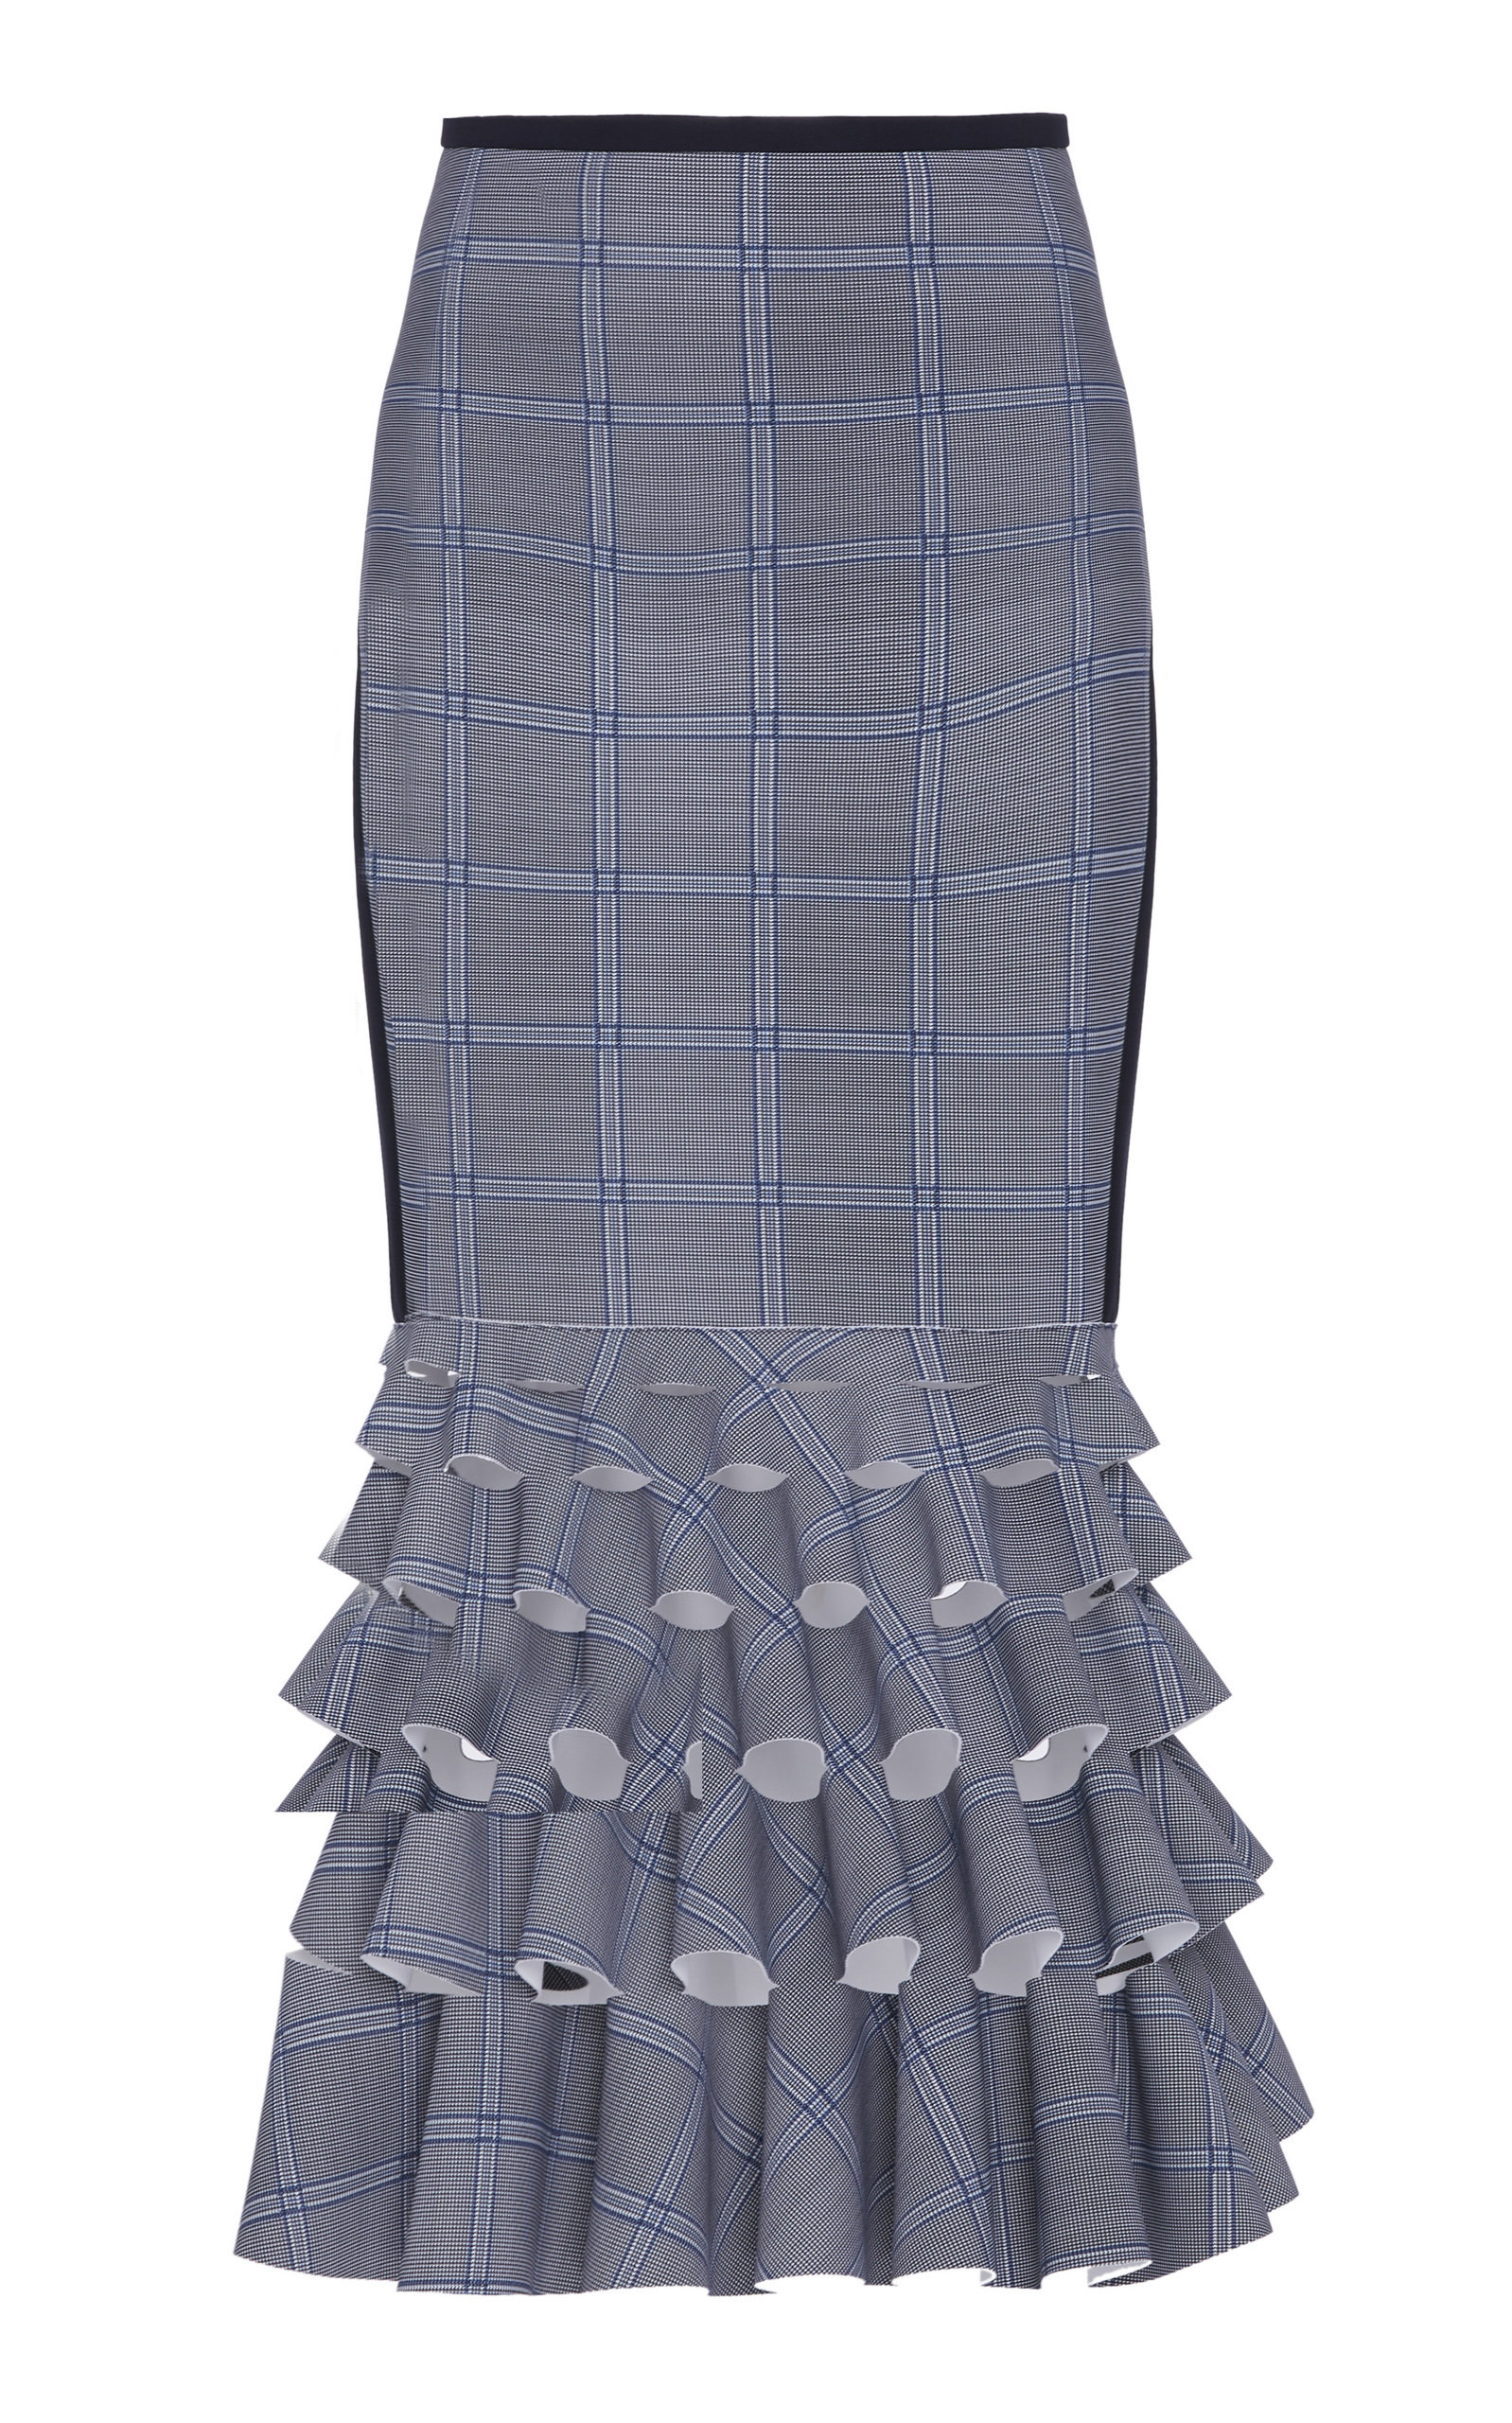 DION LEE CHECK PATTERN RUFFLE SKIRT